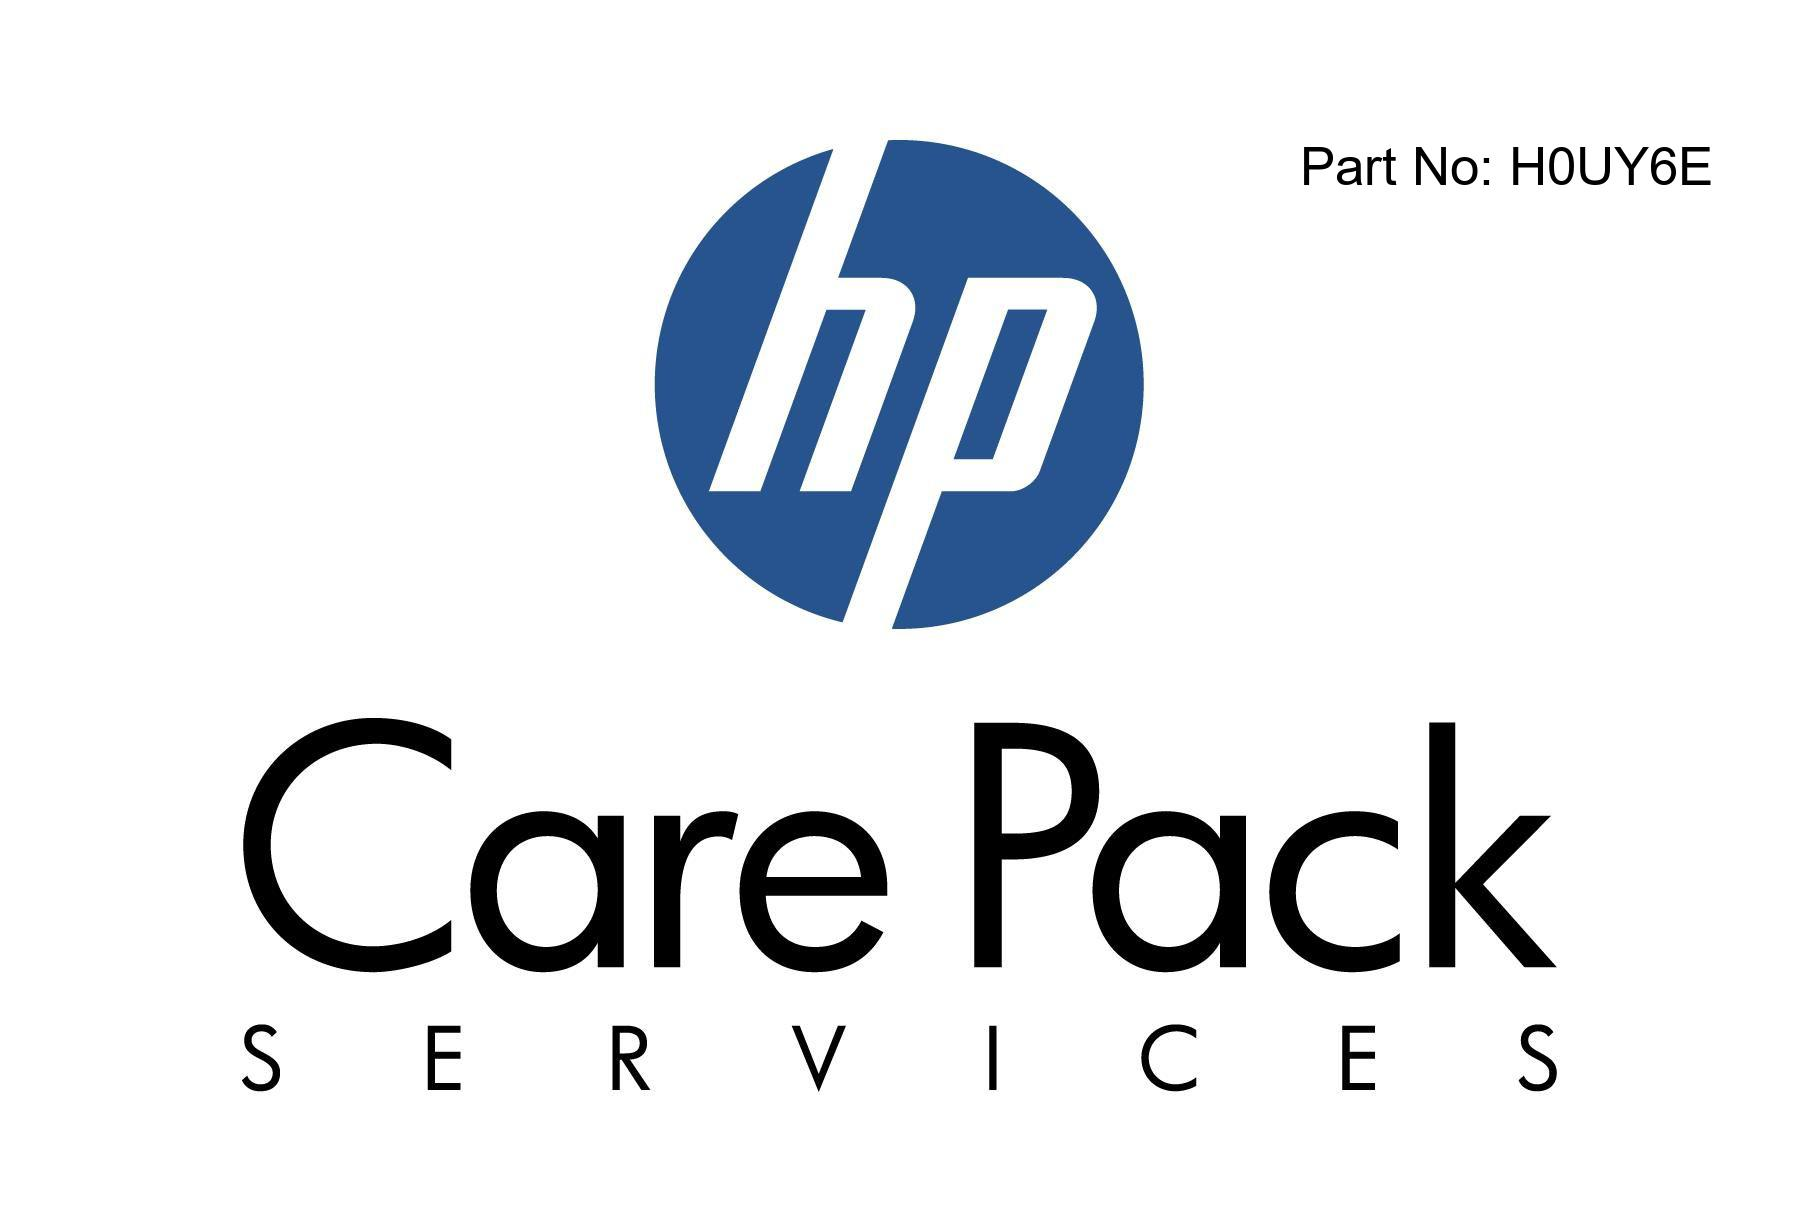 Proactive Care 24x7 Service with Defective Media Retention - Extended service agreement - parts and labor - 5 years - on-site - 24x7 - response time: 4 h